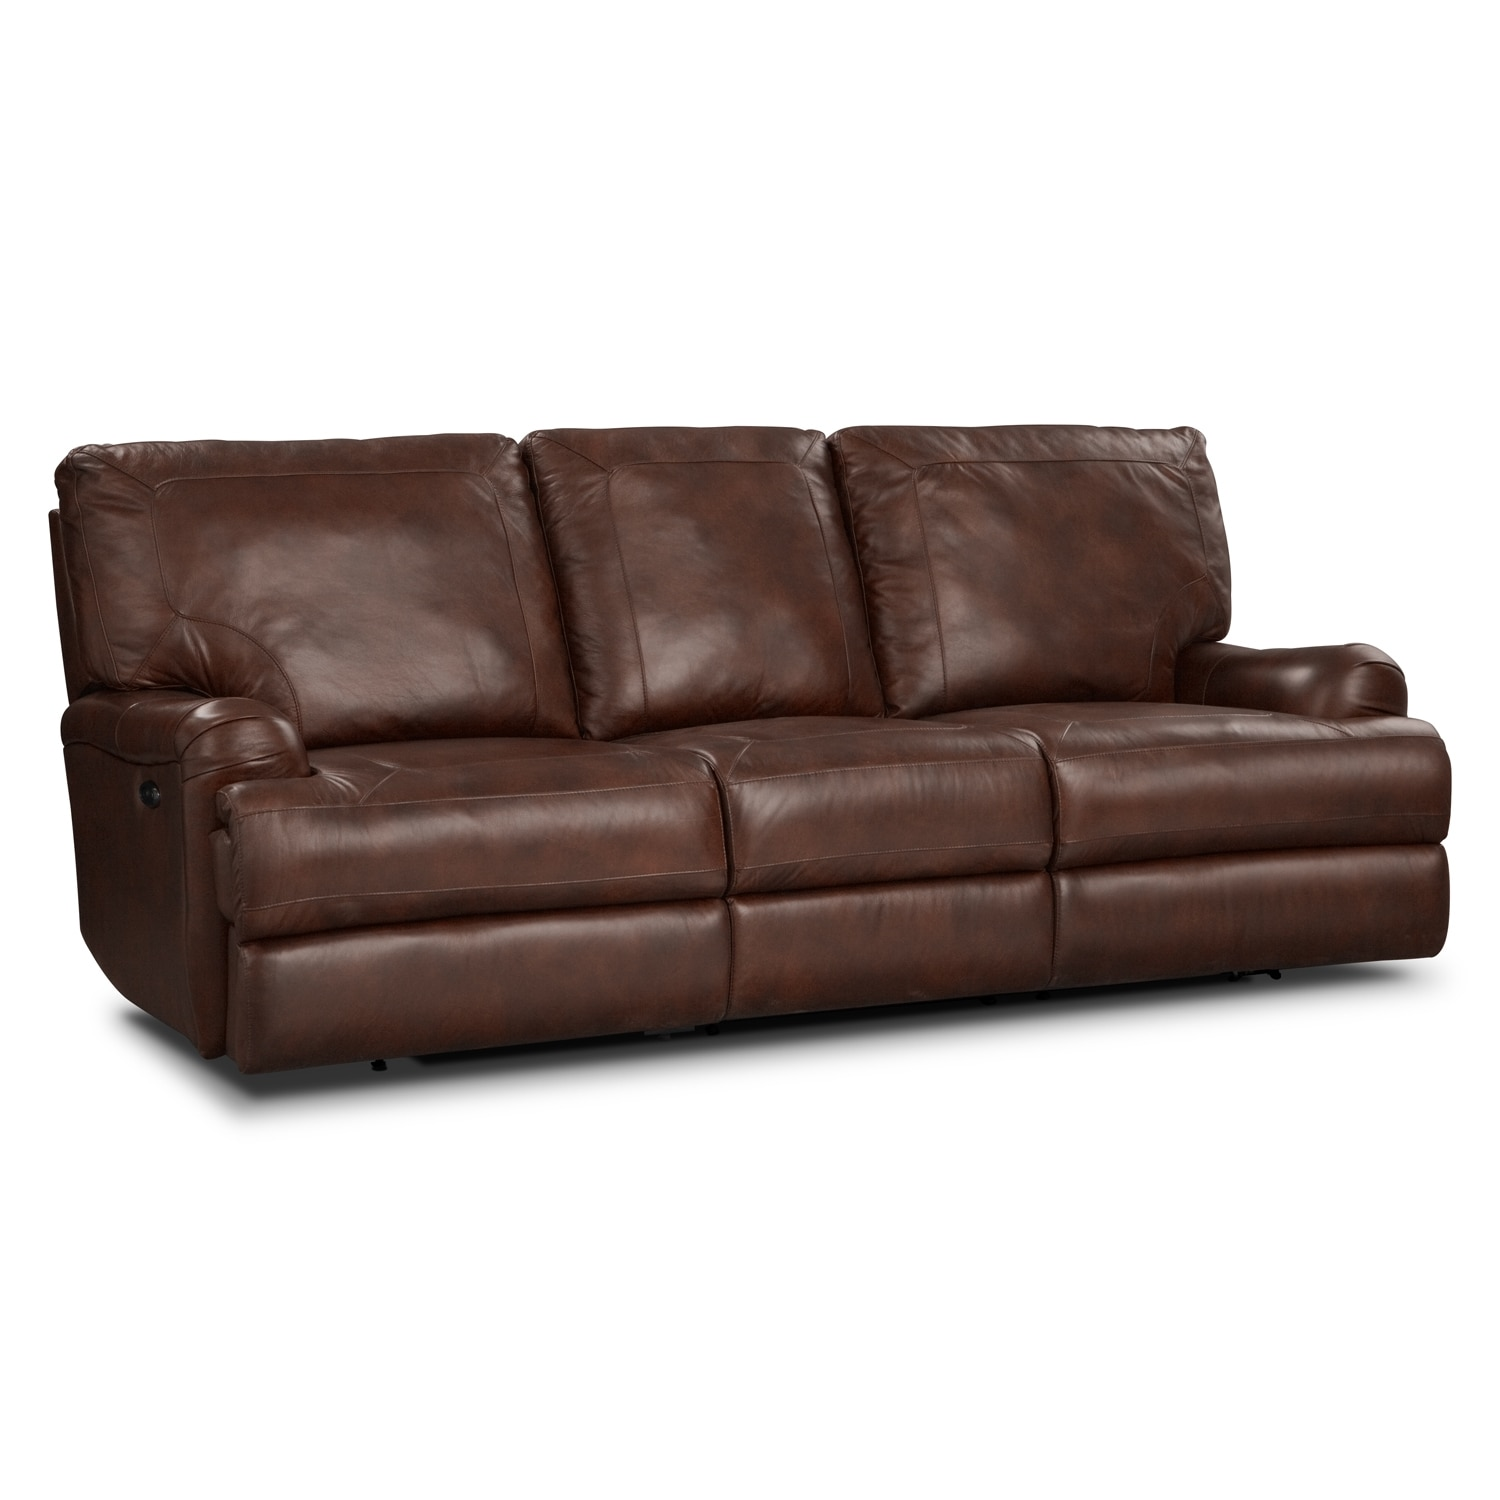 Kingsway Leather Power Reclining Sofa Value City Furniture